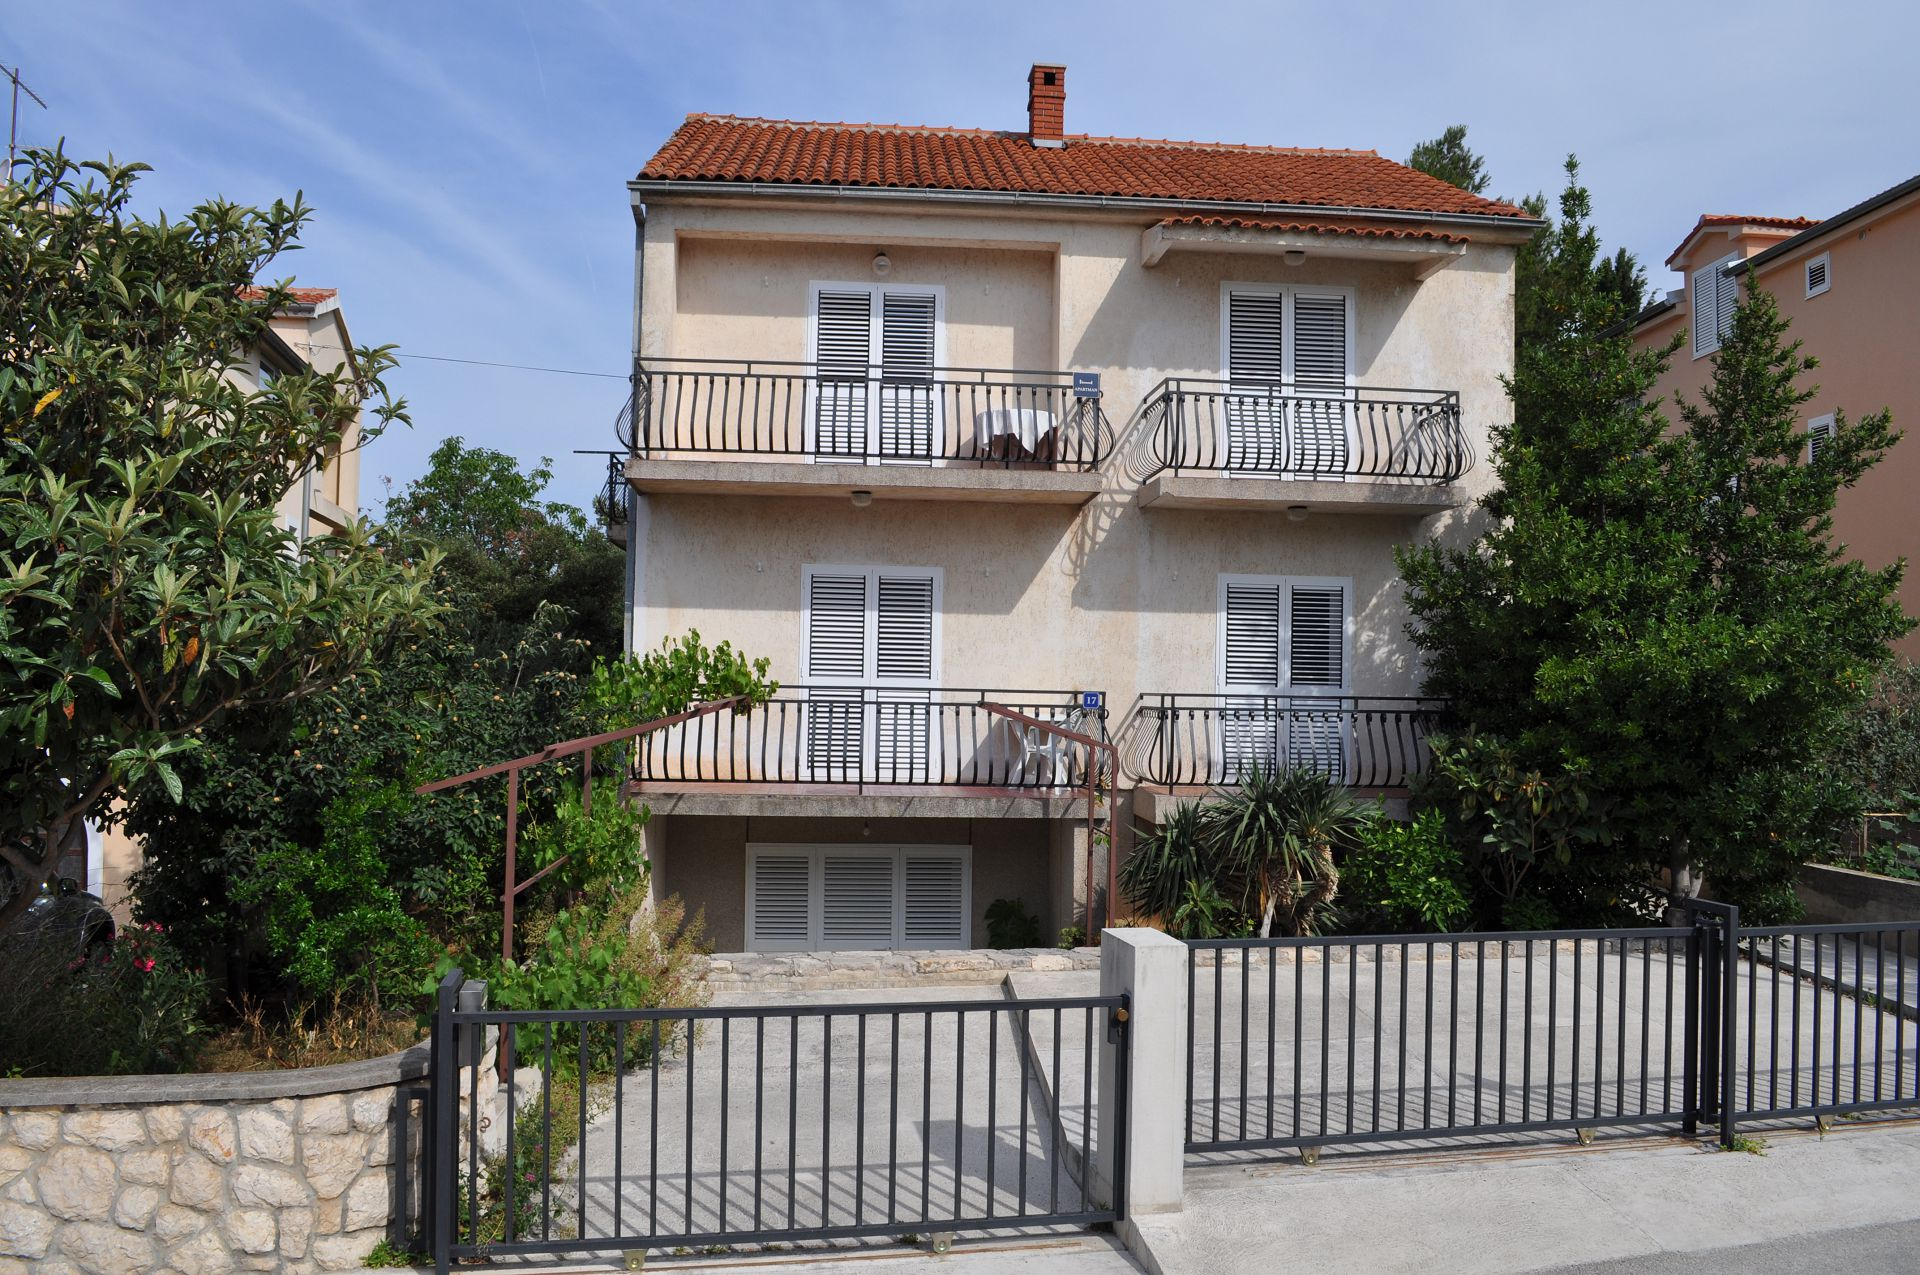 Dragica - Biograd - Apartments Croatia